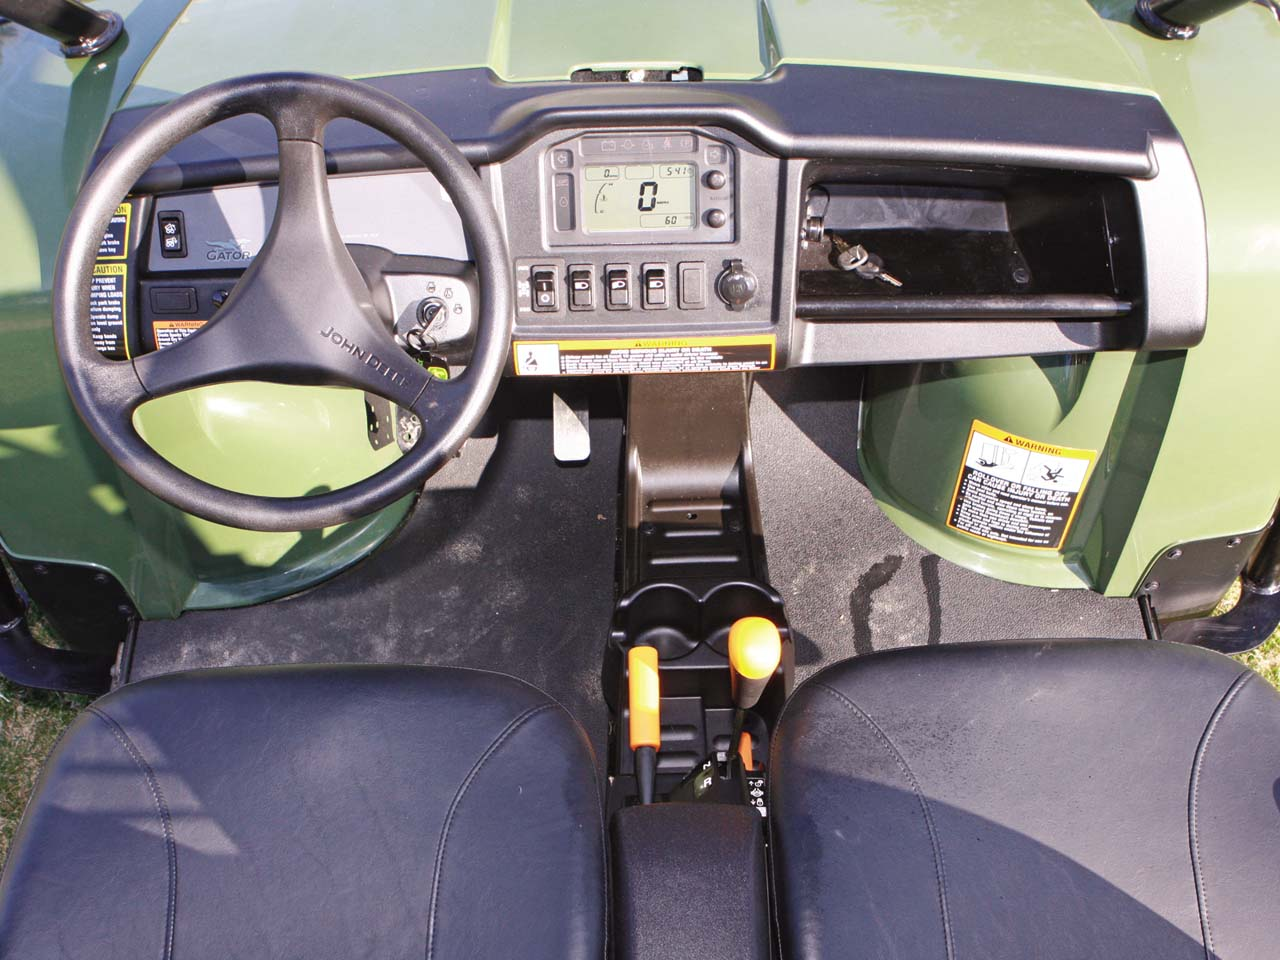 Trail And Farm Tested The John Deere Gator 825 Xuv Atv Illustrated